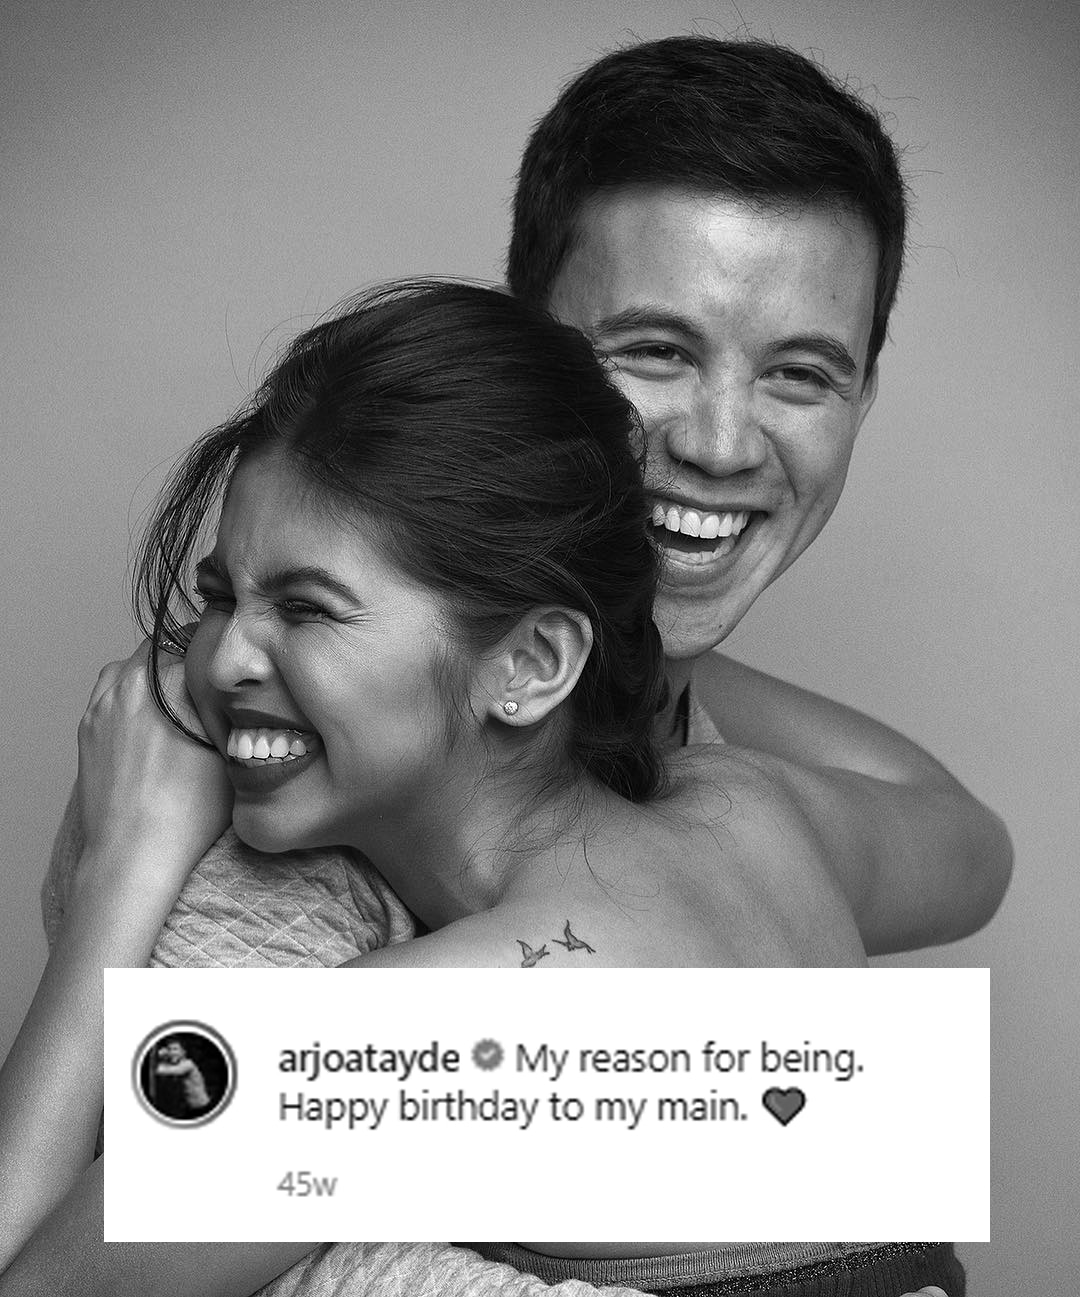 Arjo had a short but sweet birthday greeting for Maine!